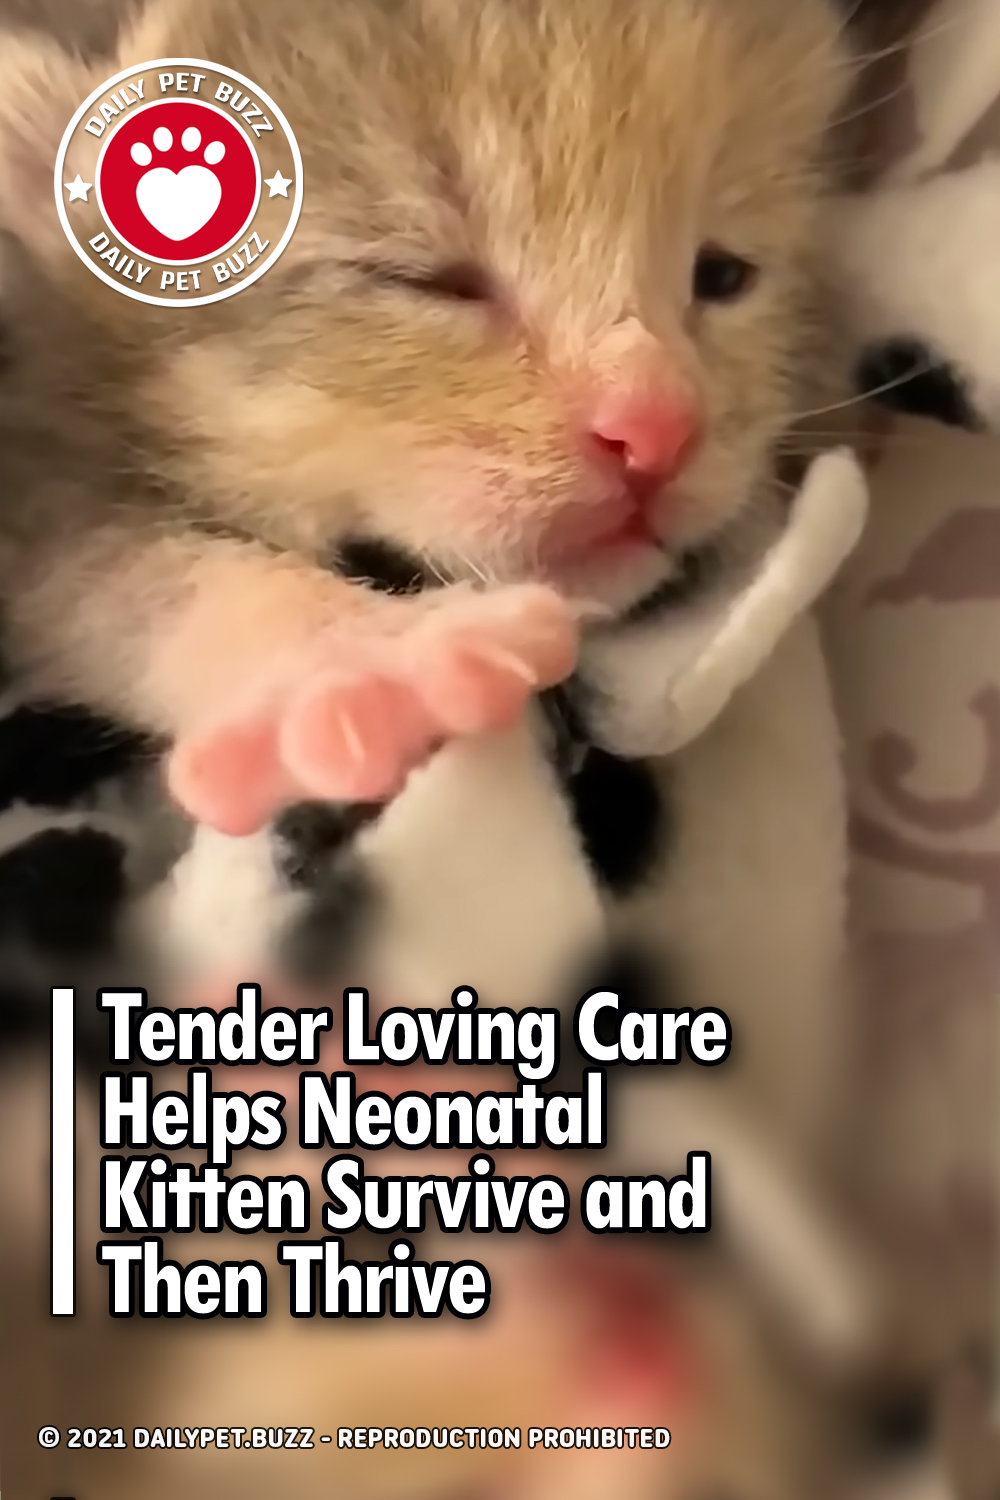 Tender Loving Care Helps Neonatal Kitten Survive and Then Thrive